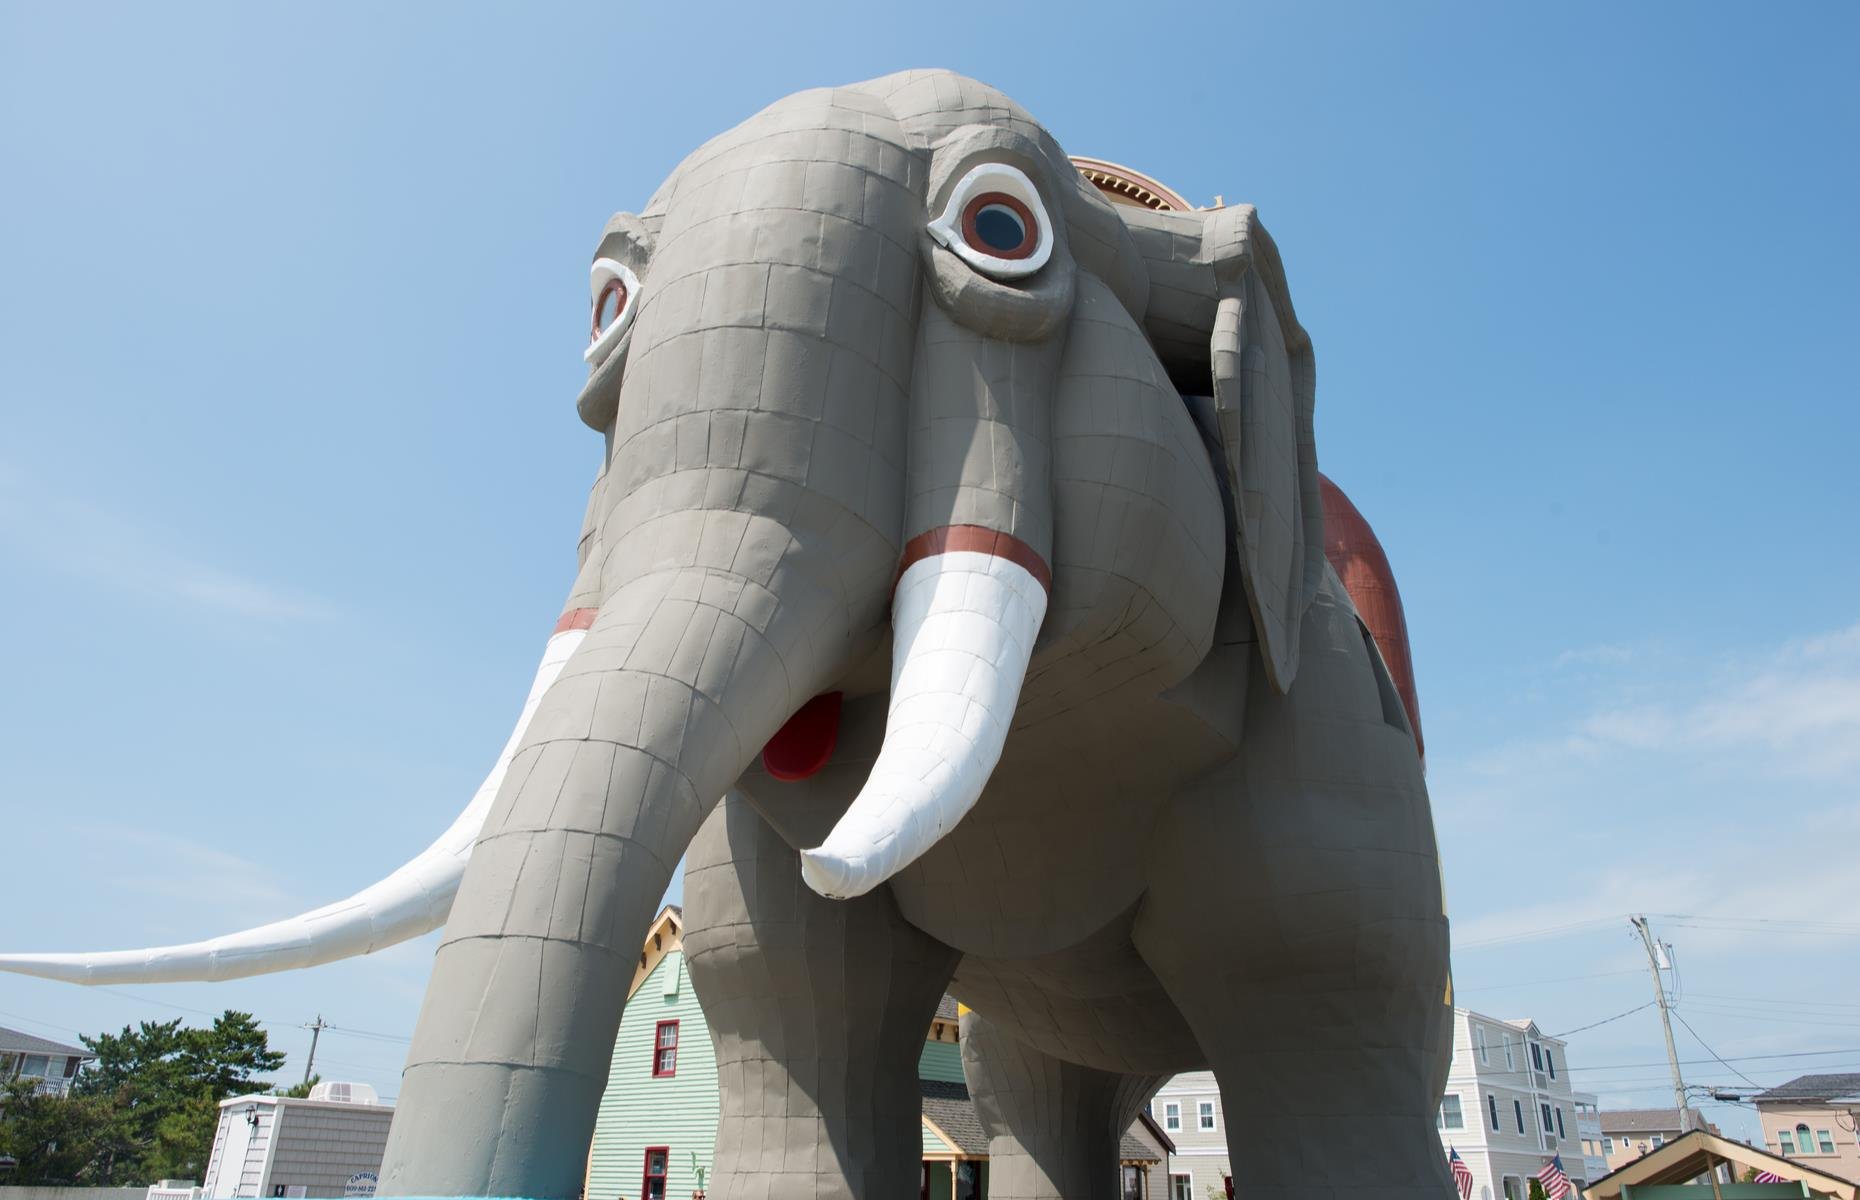 Slide 61 of 101: Feel-good Atlantic City is famed for its buzzy boardwalk, casinos and steel pier and then, out of the city proper, quirky roadside attractions begin to pop up. A highlight is Lucy the Elephant, a mammoth model elephant in Margate City (pictured). The city of Cape May sits right at the southern tip of the Cape May peninsula, near attractions such as the Cape May National Wildlife Refuge with its beaches, dunes and marshes (the FWS reminds visitors to check for park updates before heading out).